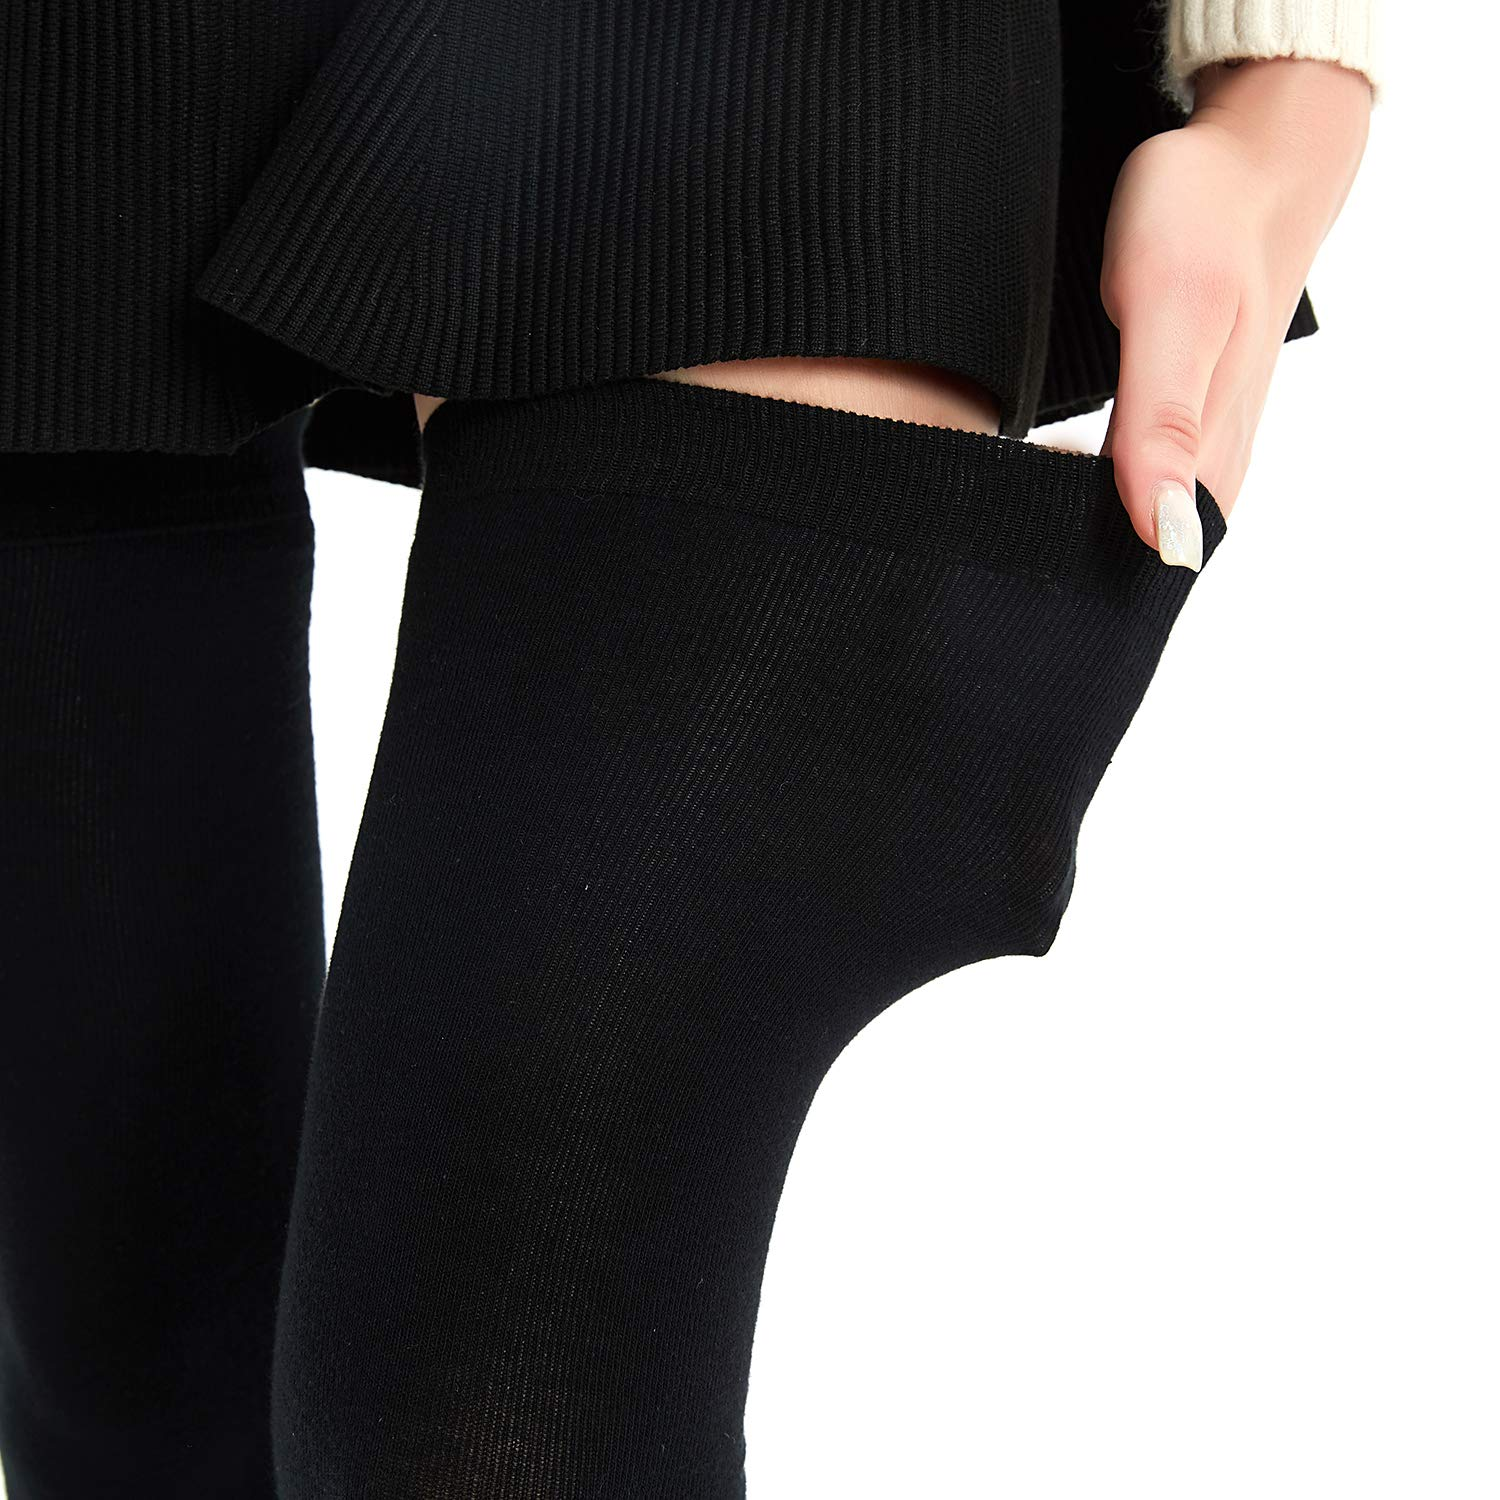 Kayhoma Extra Long Cotton Stripe Thigh High Socks Over the Knee High Stockings